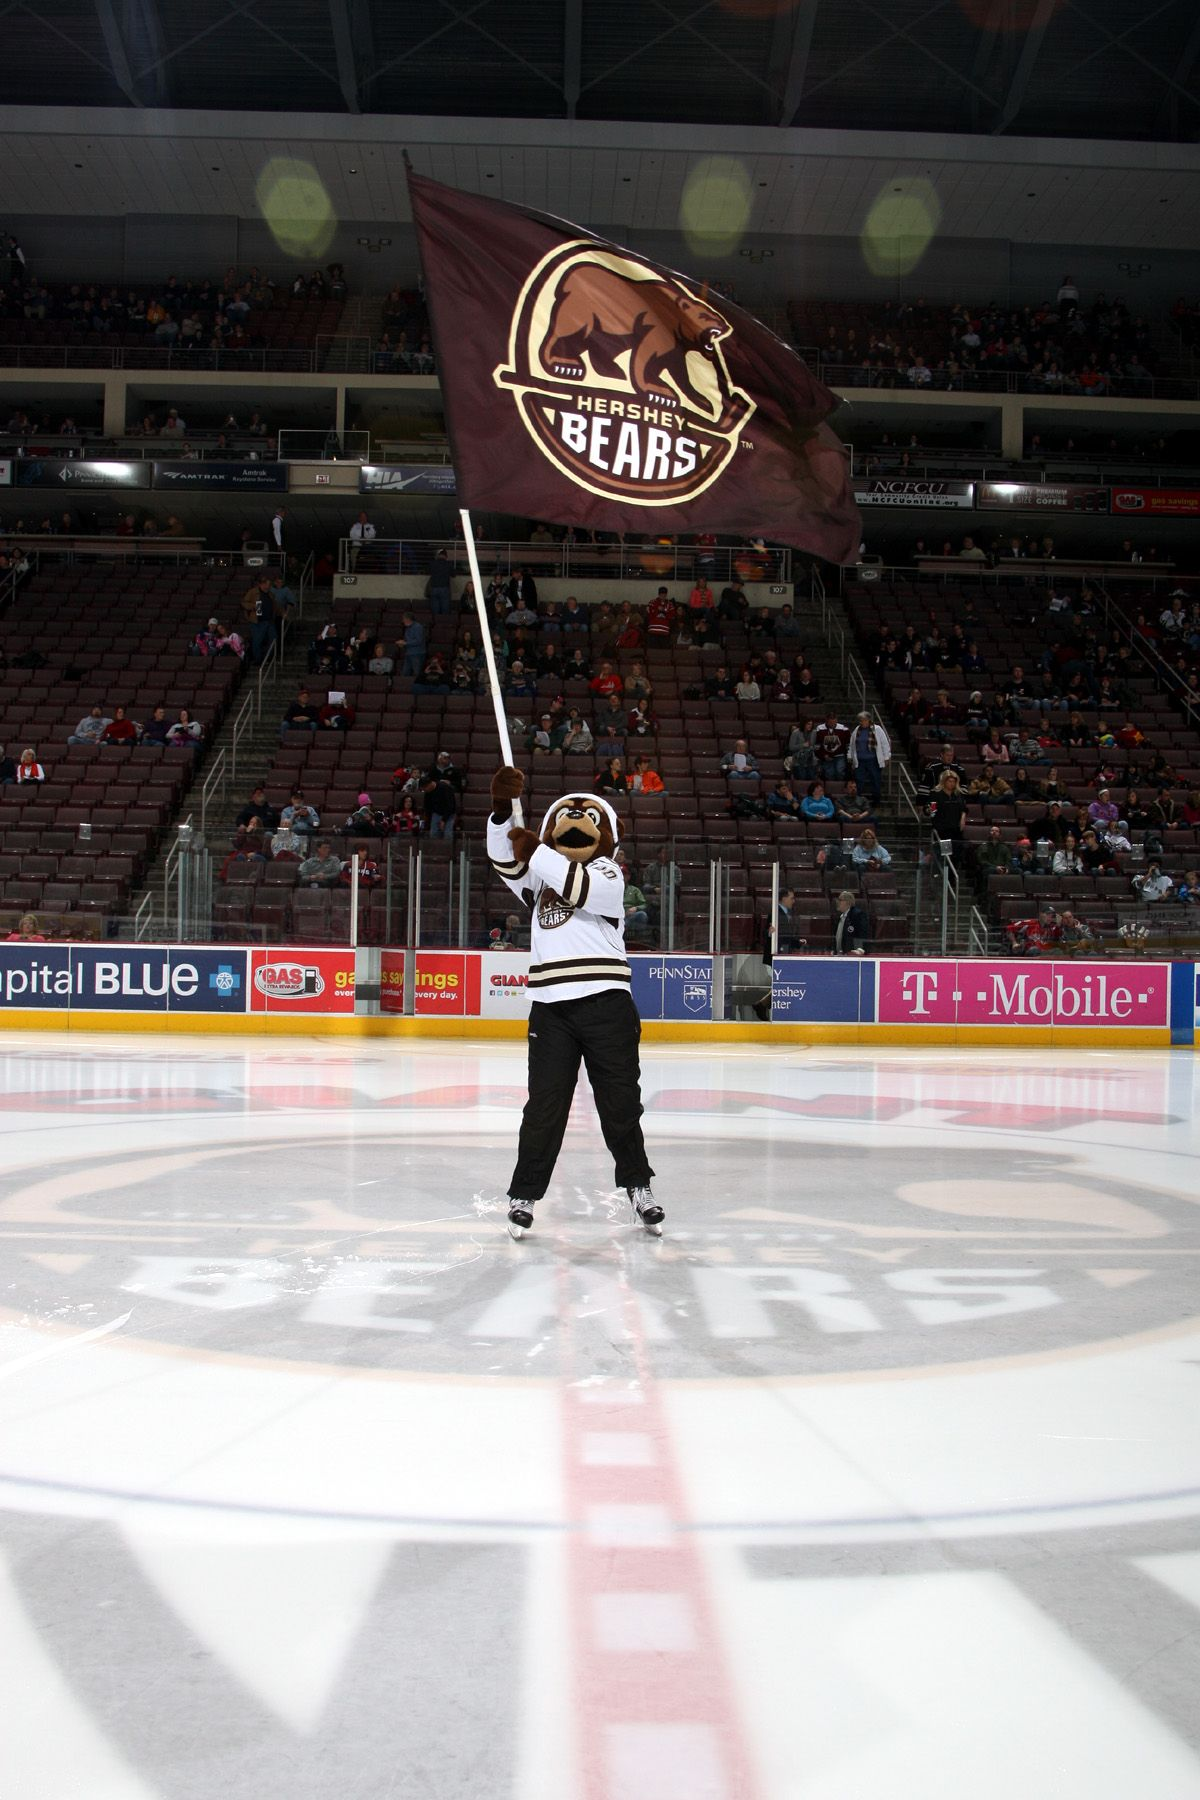 02 21 15 Coco The Bear With His Hershey Bears Flag At Center Ice During Pre Game Photo Courtesy Of Justsports Photography Hershey Bears Bear Hershey